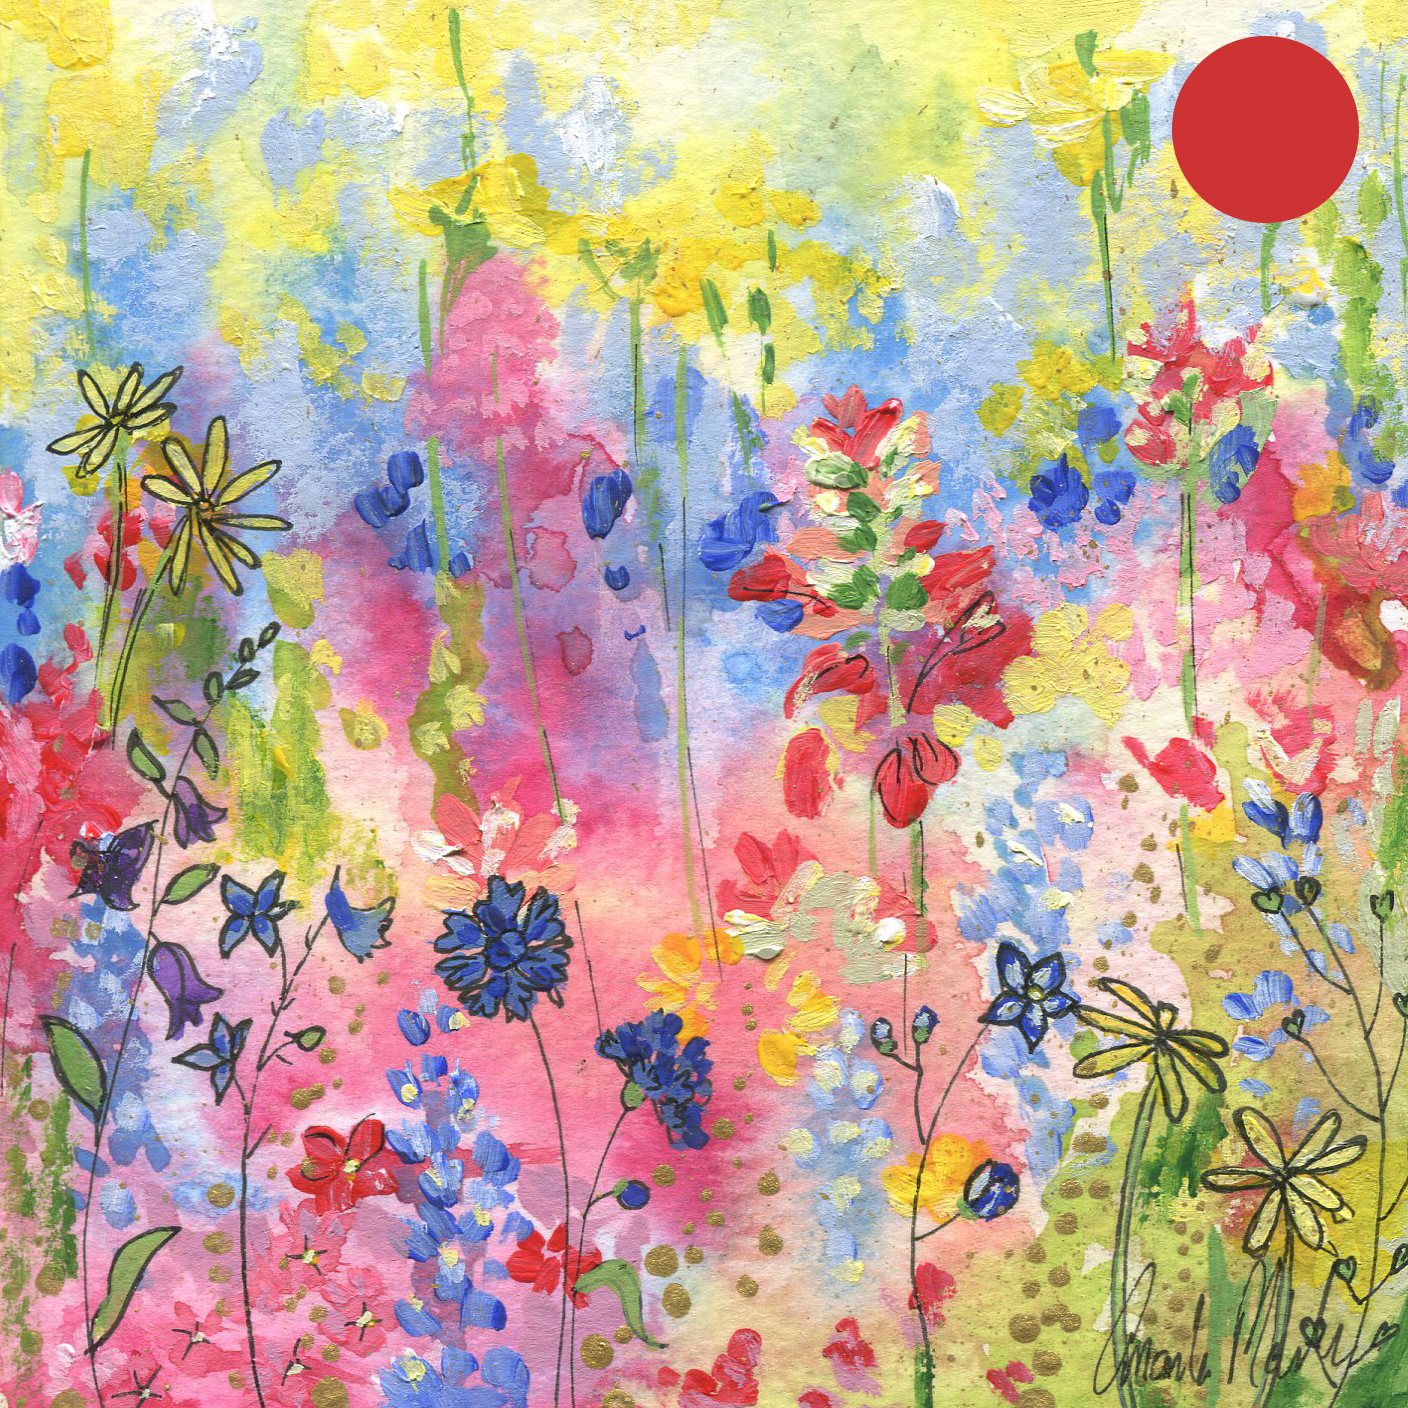 SOLD:  ORIGINAL WATERCOLOR, ACRYLIC AND PEN PAINTING 5X5 Inches, Wildflowers: